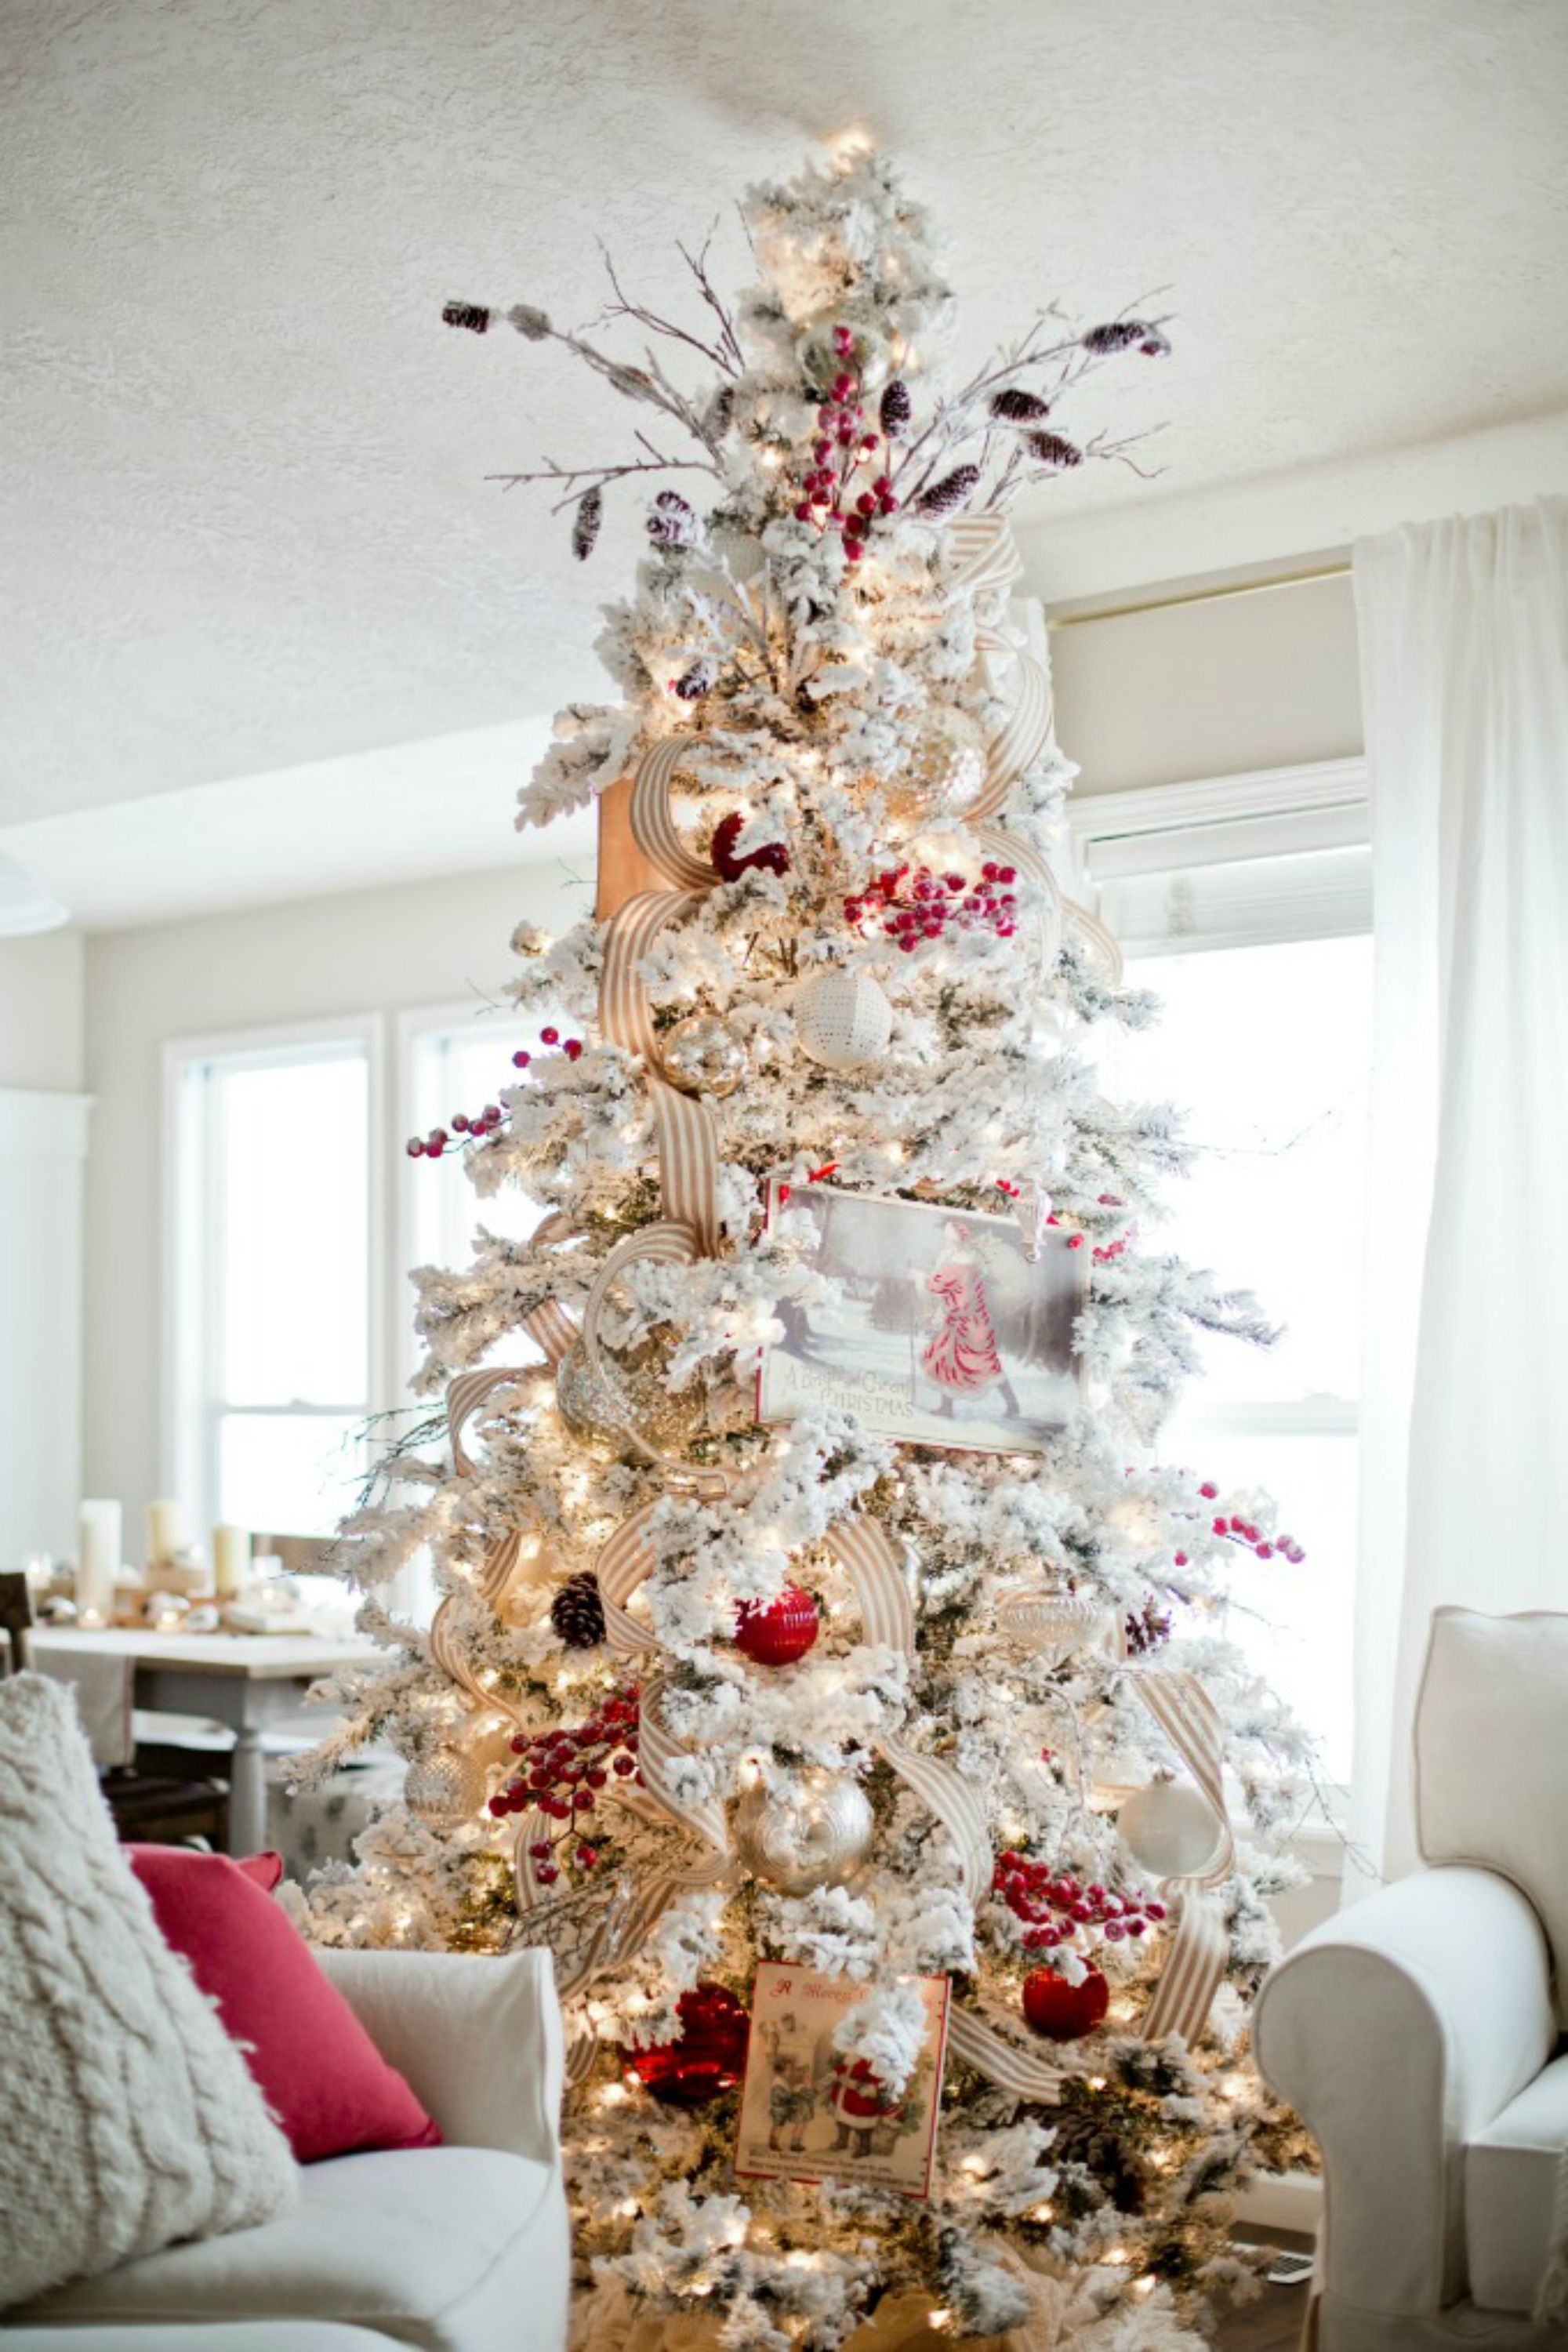 Frosted Christmas Tree Decorations  1449174802 Xmast1o